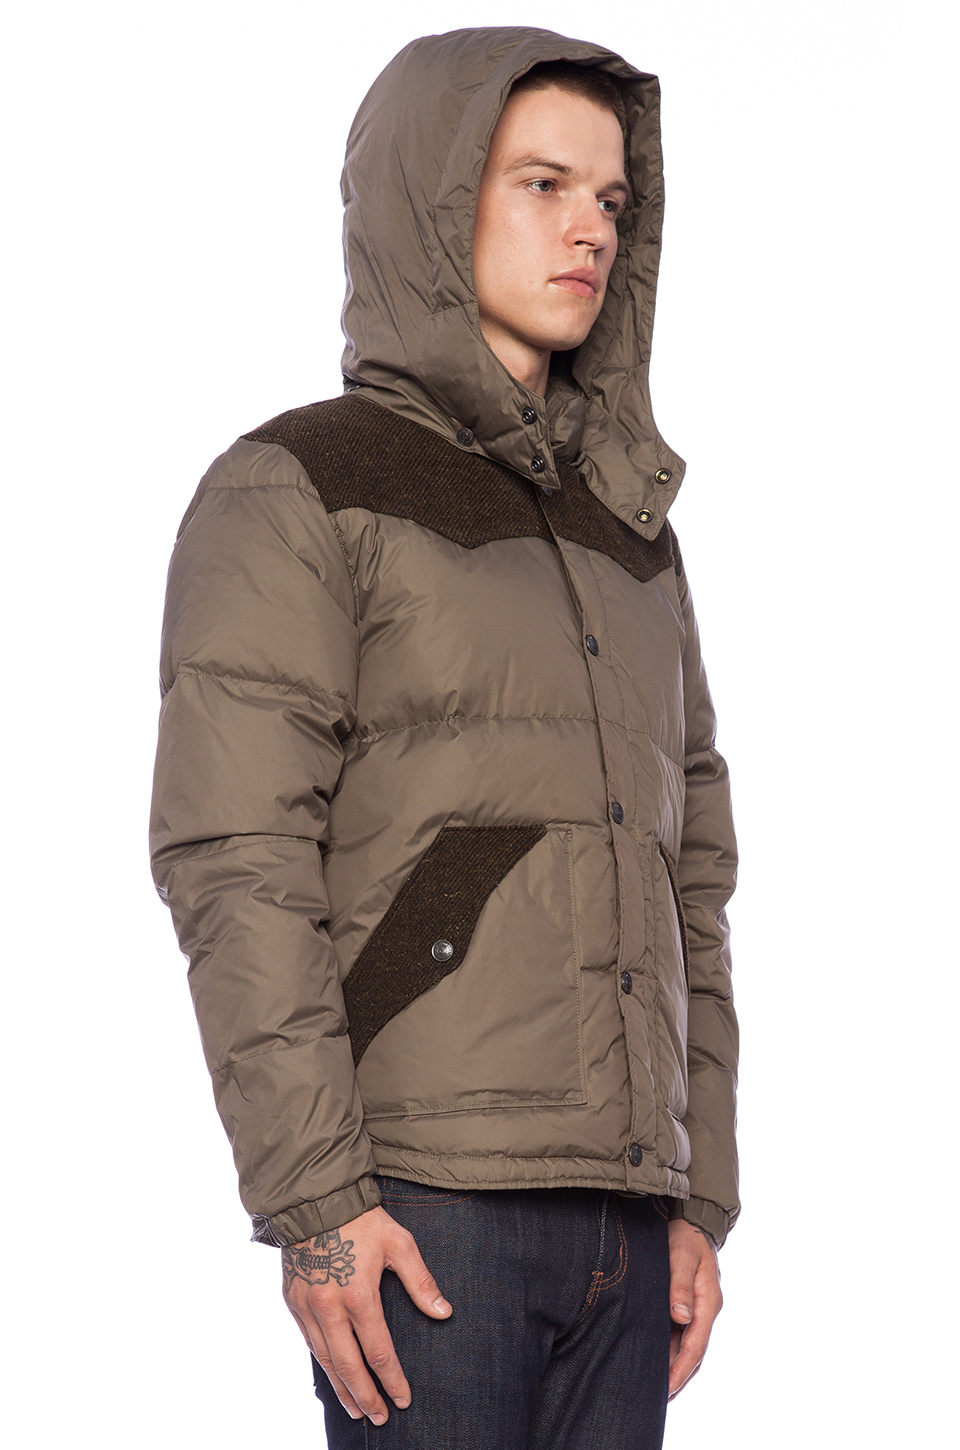 lyst true religion puffer jacket with contrast in natural for men. Black Bedroom Furniture Sets. Home Design Ideas